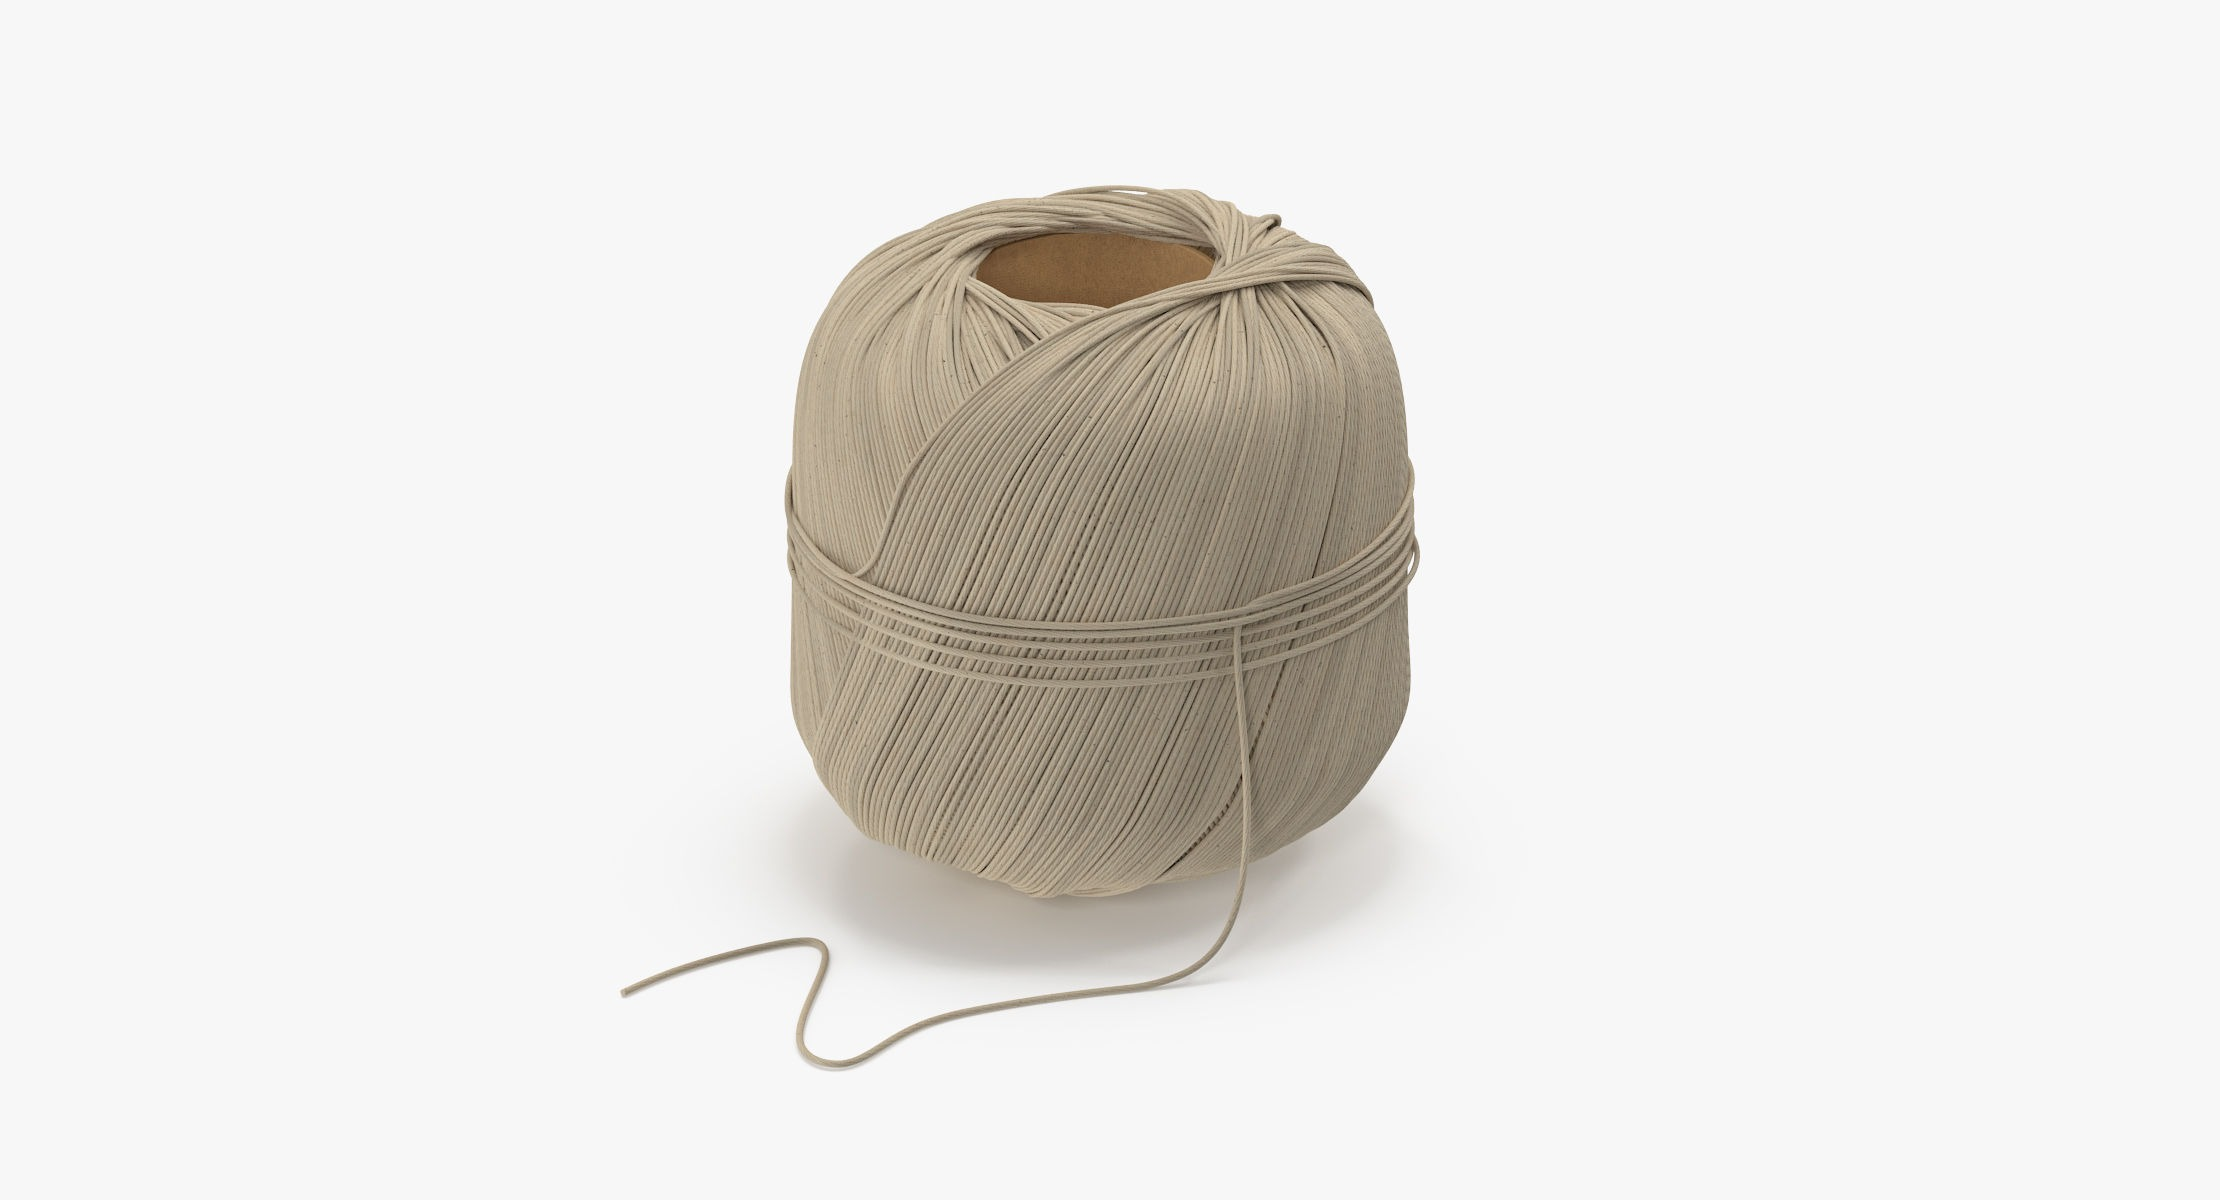 Linen Cooking Twine Spool - reel 1